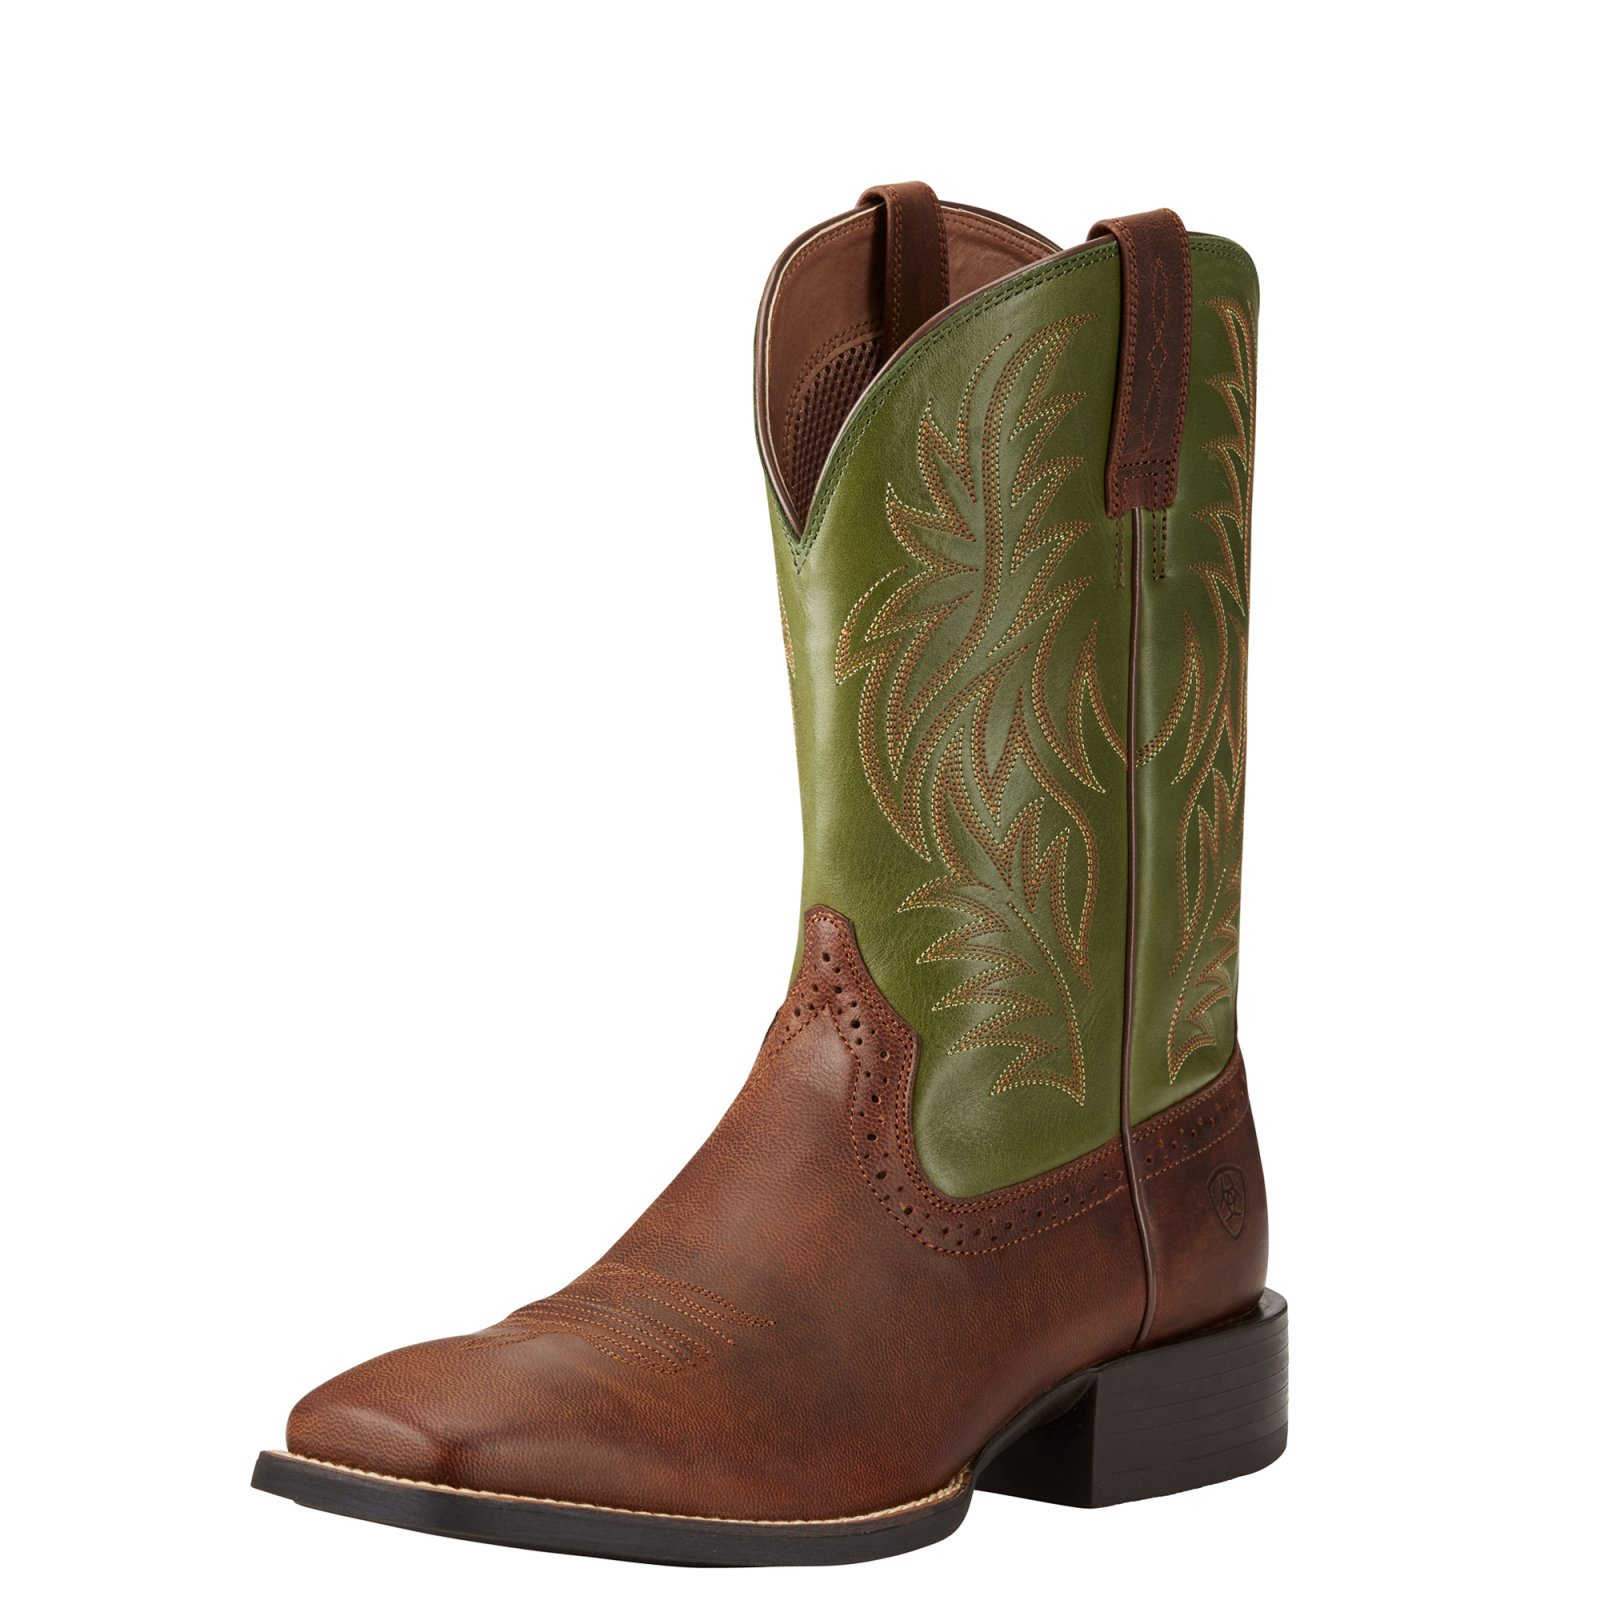 Sport Western Wide Square Toe from Ariat